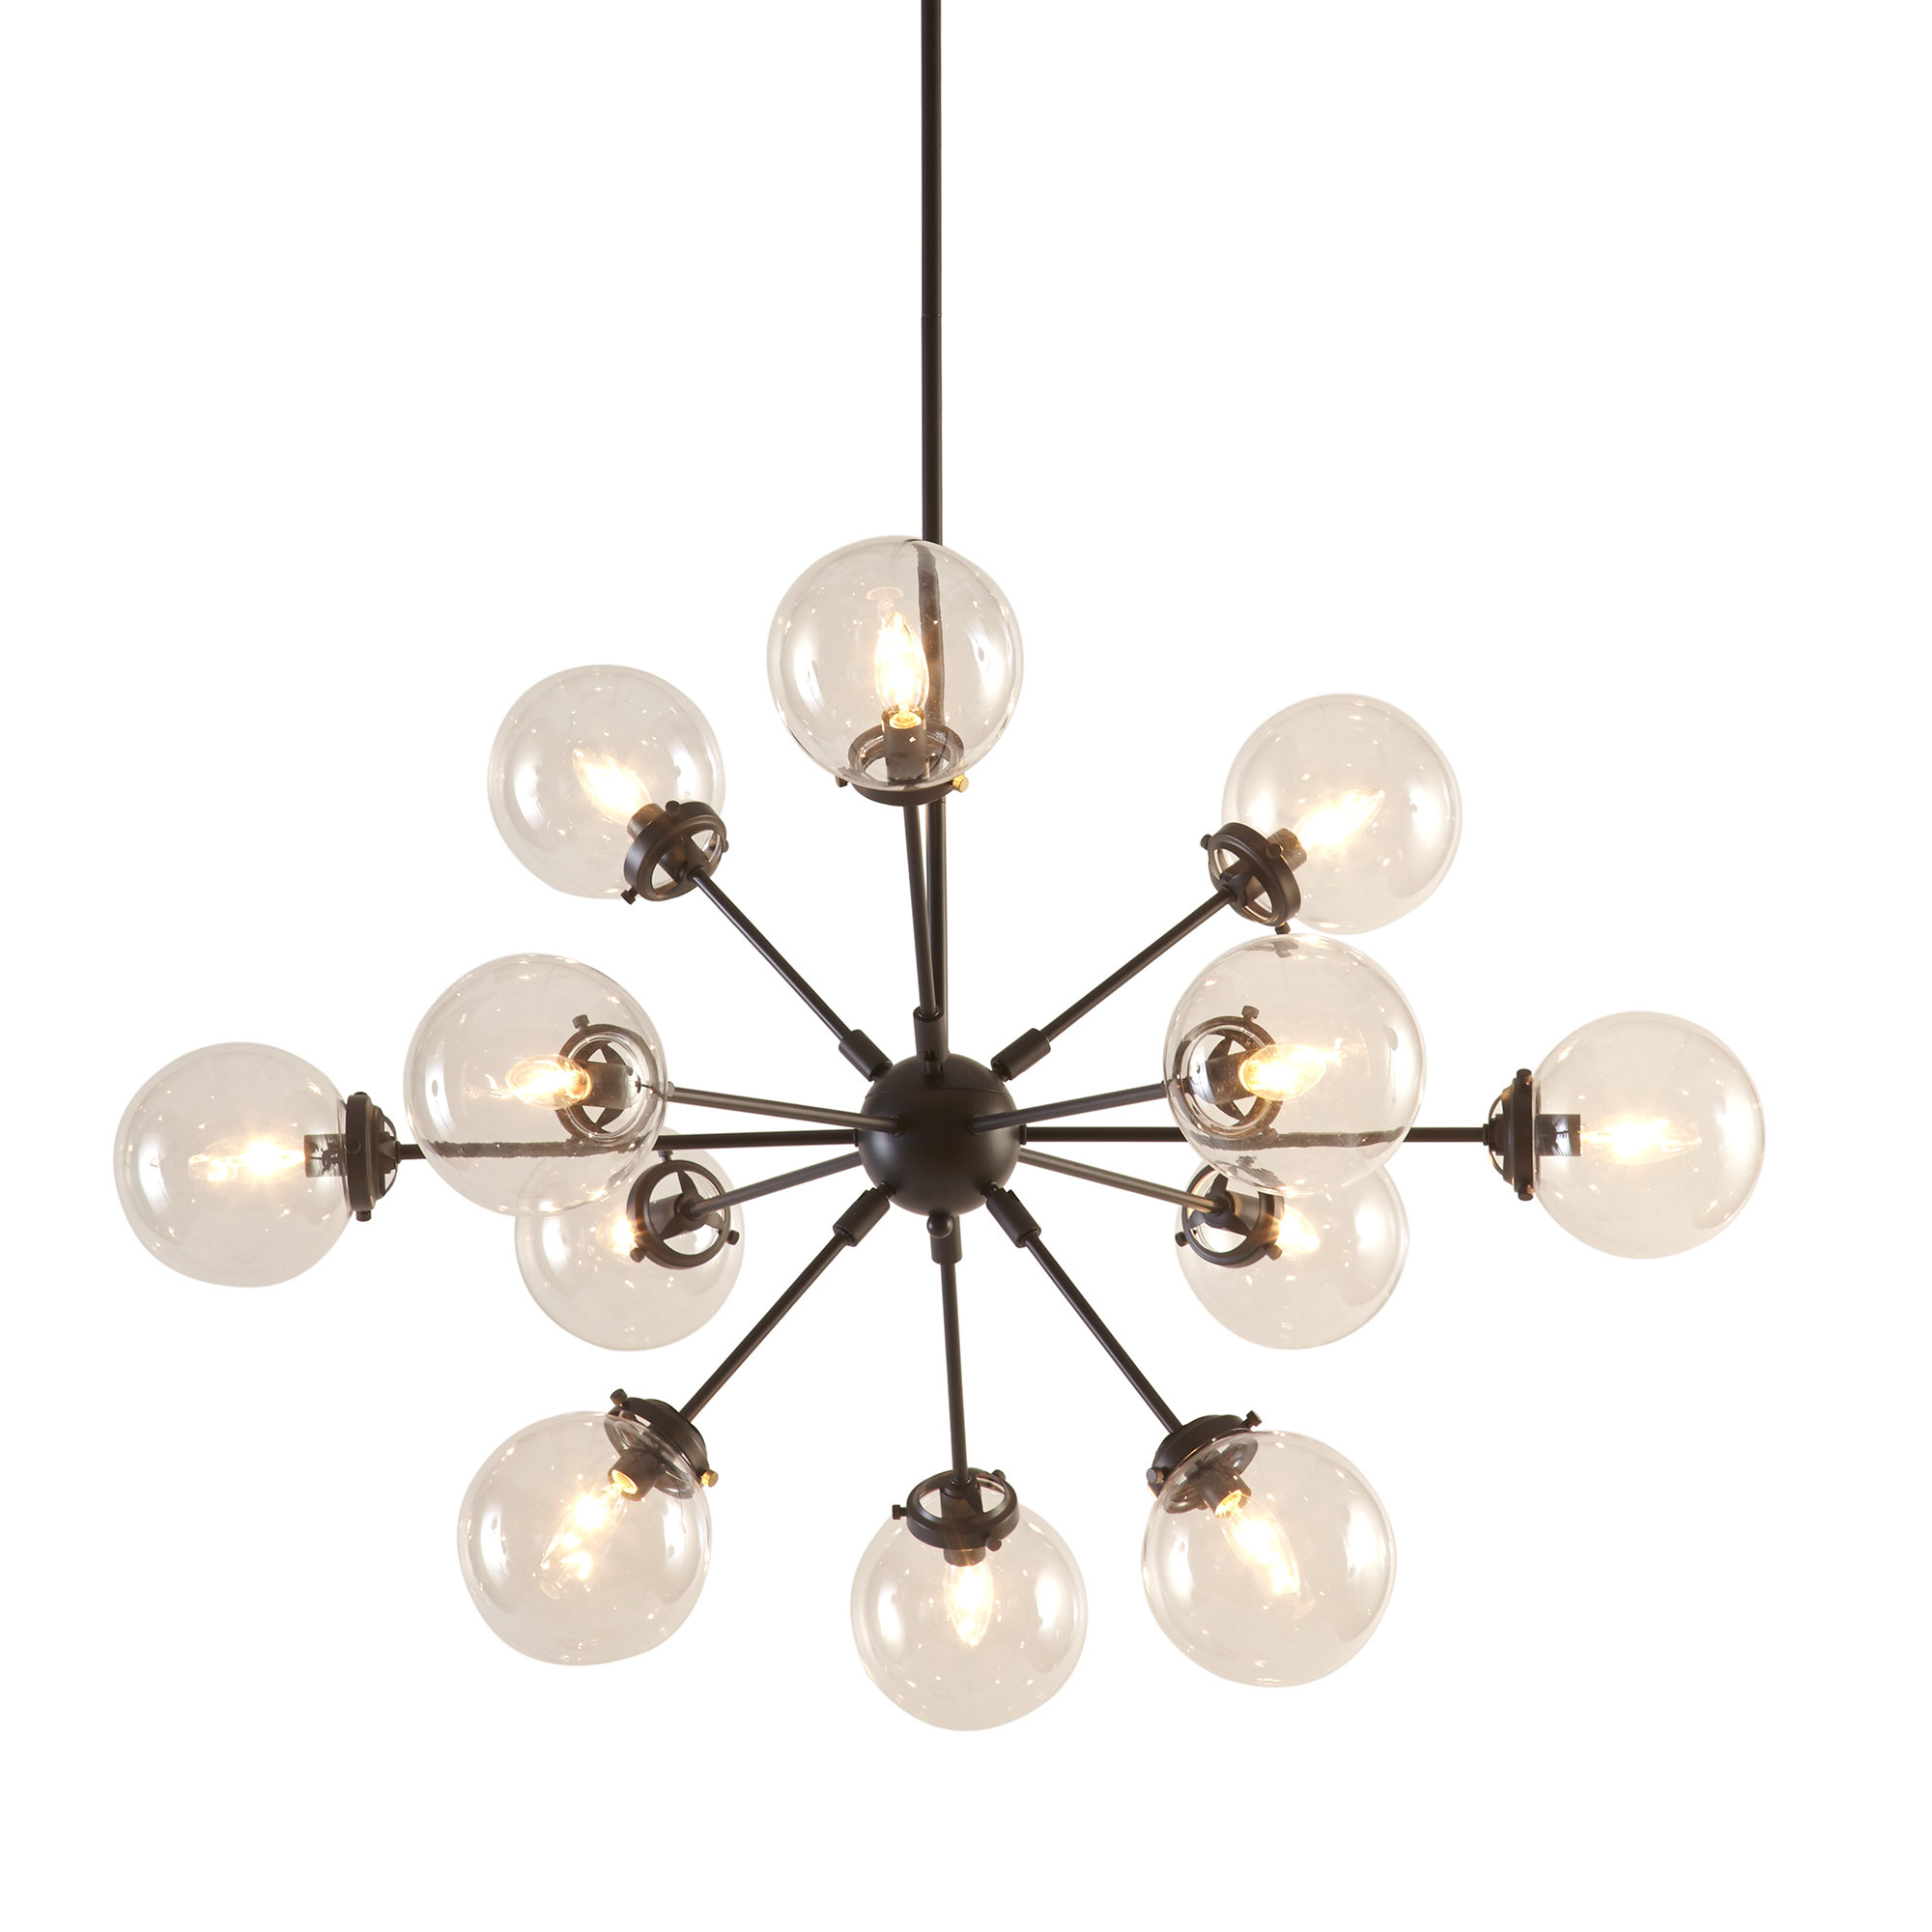 Nelly 12 Light Sputnik Chandeliers With Regard To Favorite Modern Rustic Interiors Asher 12 Light Sputnik Chandelier (View 18 of 25)